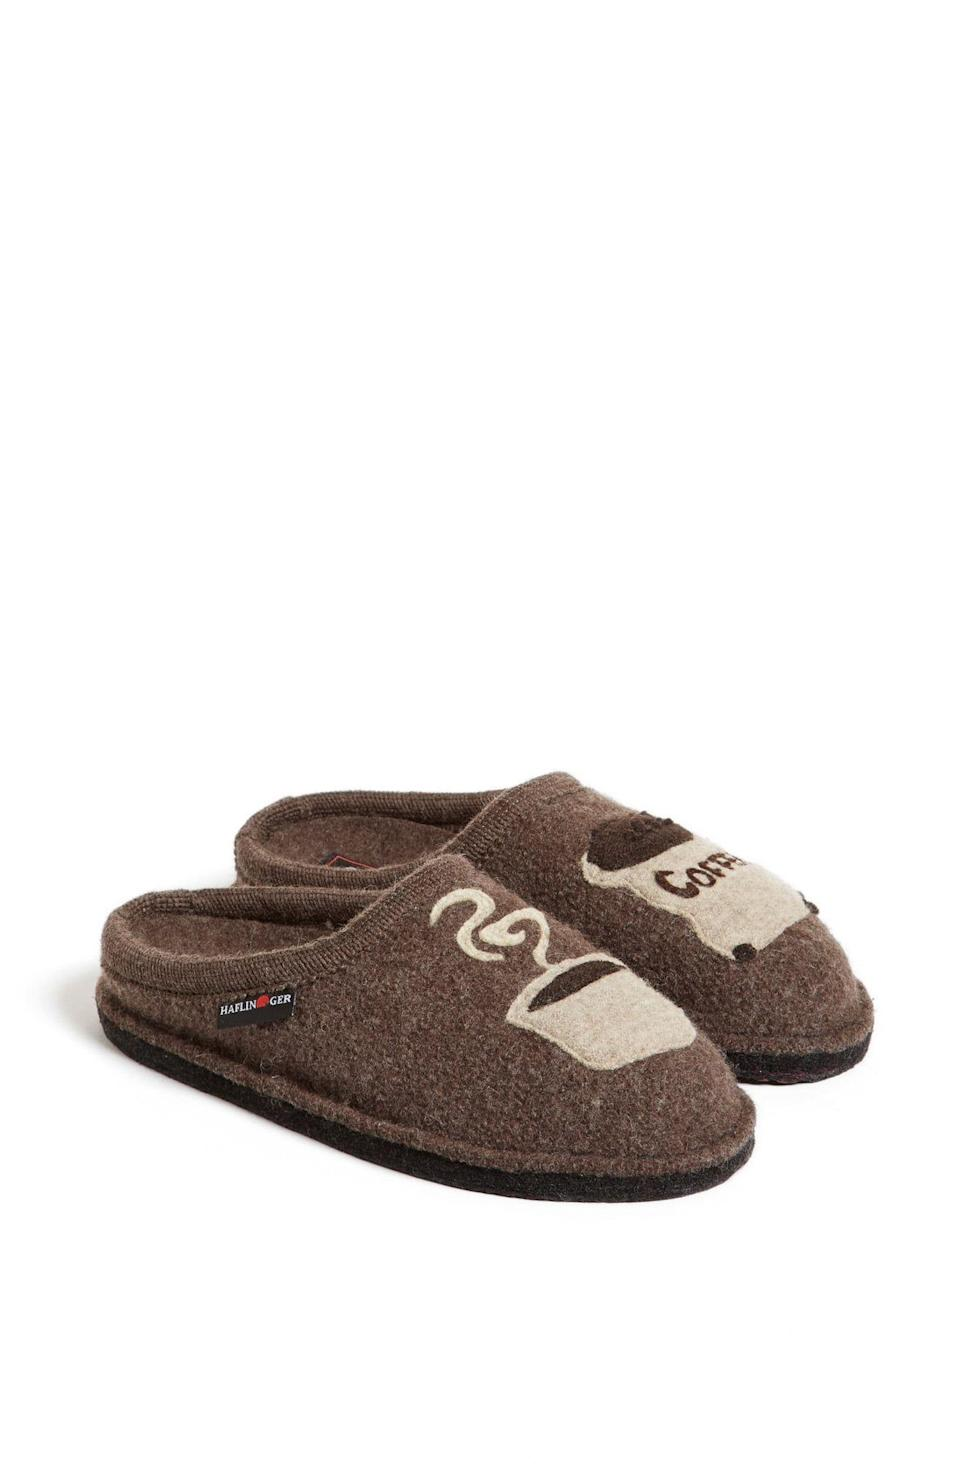 """<p><strong>Haflinger</strong></p><p>nordstrom.com</p><p><strong>$85.95</strong></p><p><a href=""""https://go.redirectingat.com?id=74968X1596630&url=https%3A%2F%2Fwww.nordstrom.com%2Fs%2Fhaflinger-coffee-slipper%2F3514212&sref=https%3A%2F%2Fwww.delish.com%2Fholiday-recipes%2Fchristmas%2Fg3132%2Fgift-coffee-obsessed%2F"""" rel=""""nofollow noopener"""" target=""""_blank"""" data-ylk=""""slk:BUY NOW"""" class=""""link rapid-noclick-resp"""">BUY NOW</a></p><p>For peak Sunday-morning coziness. </p>"""